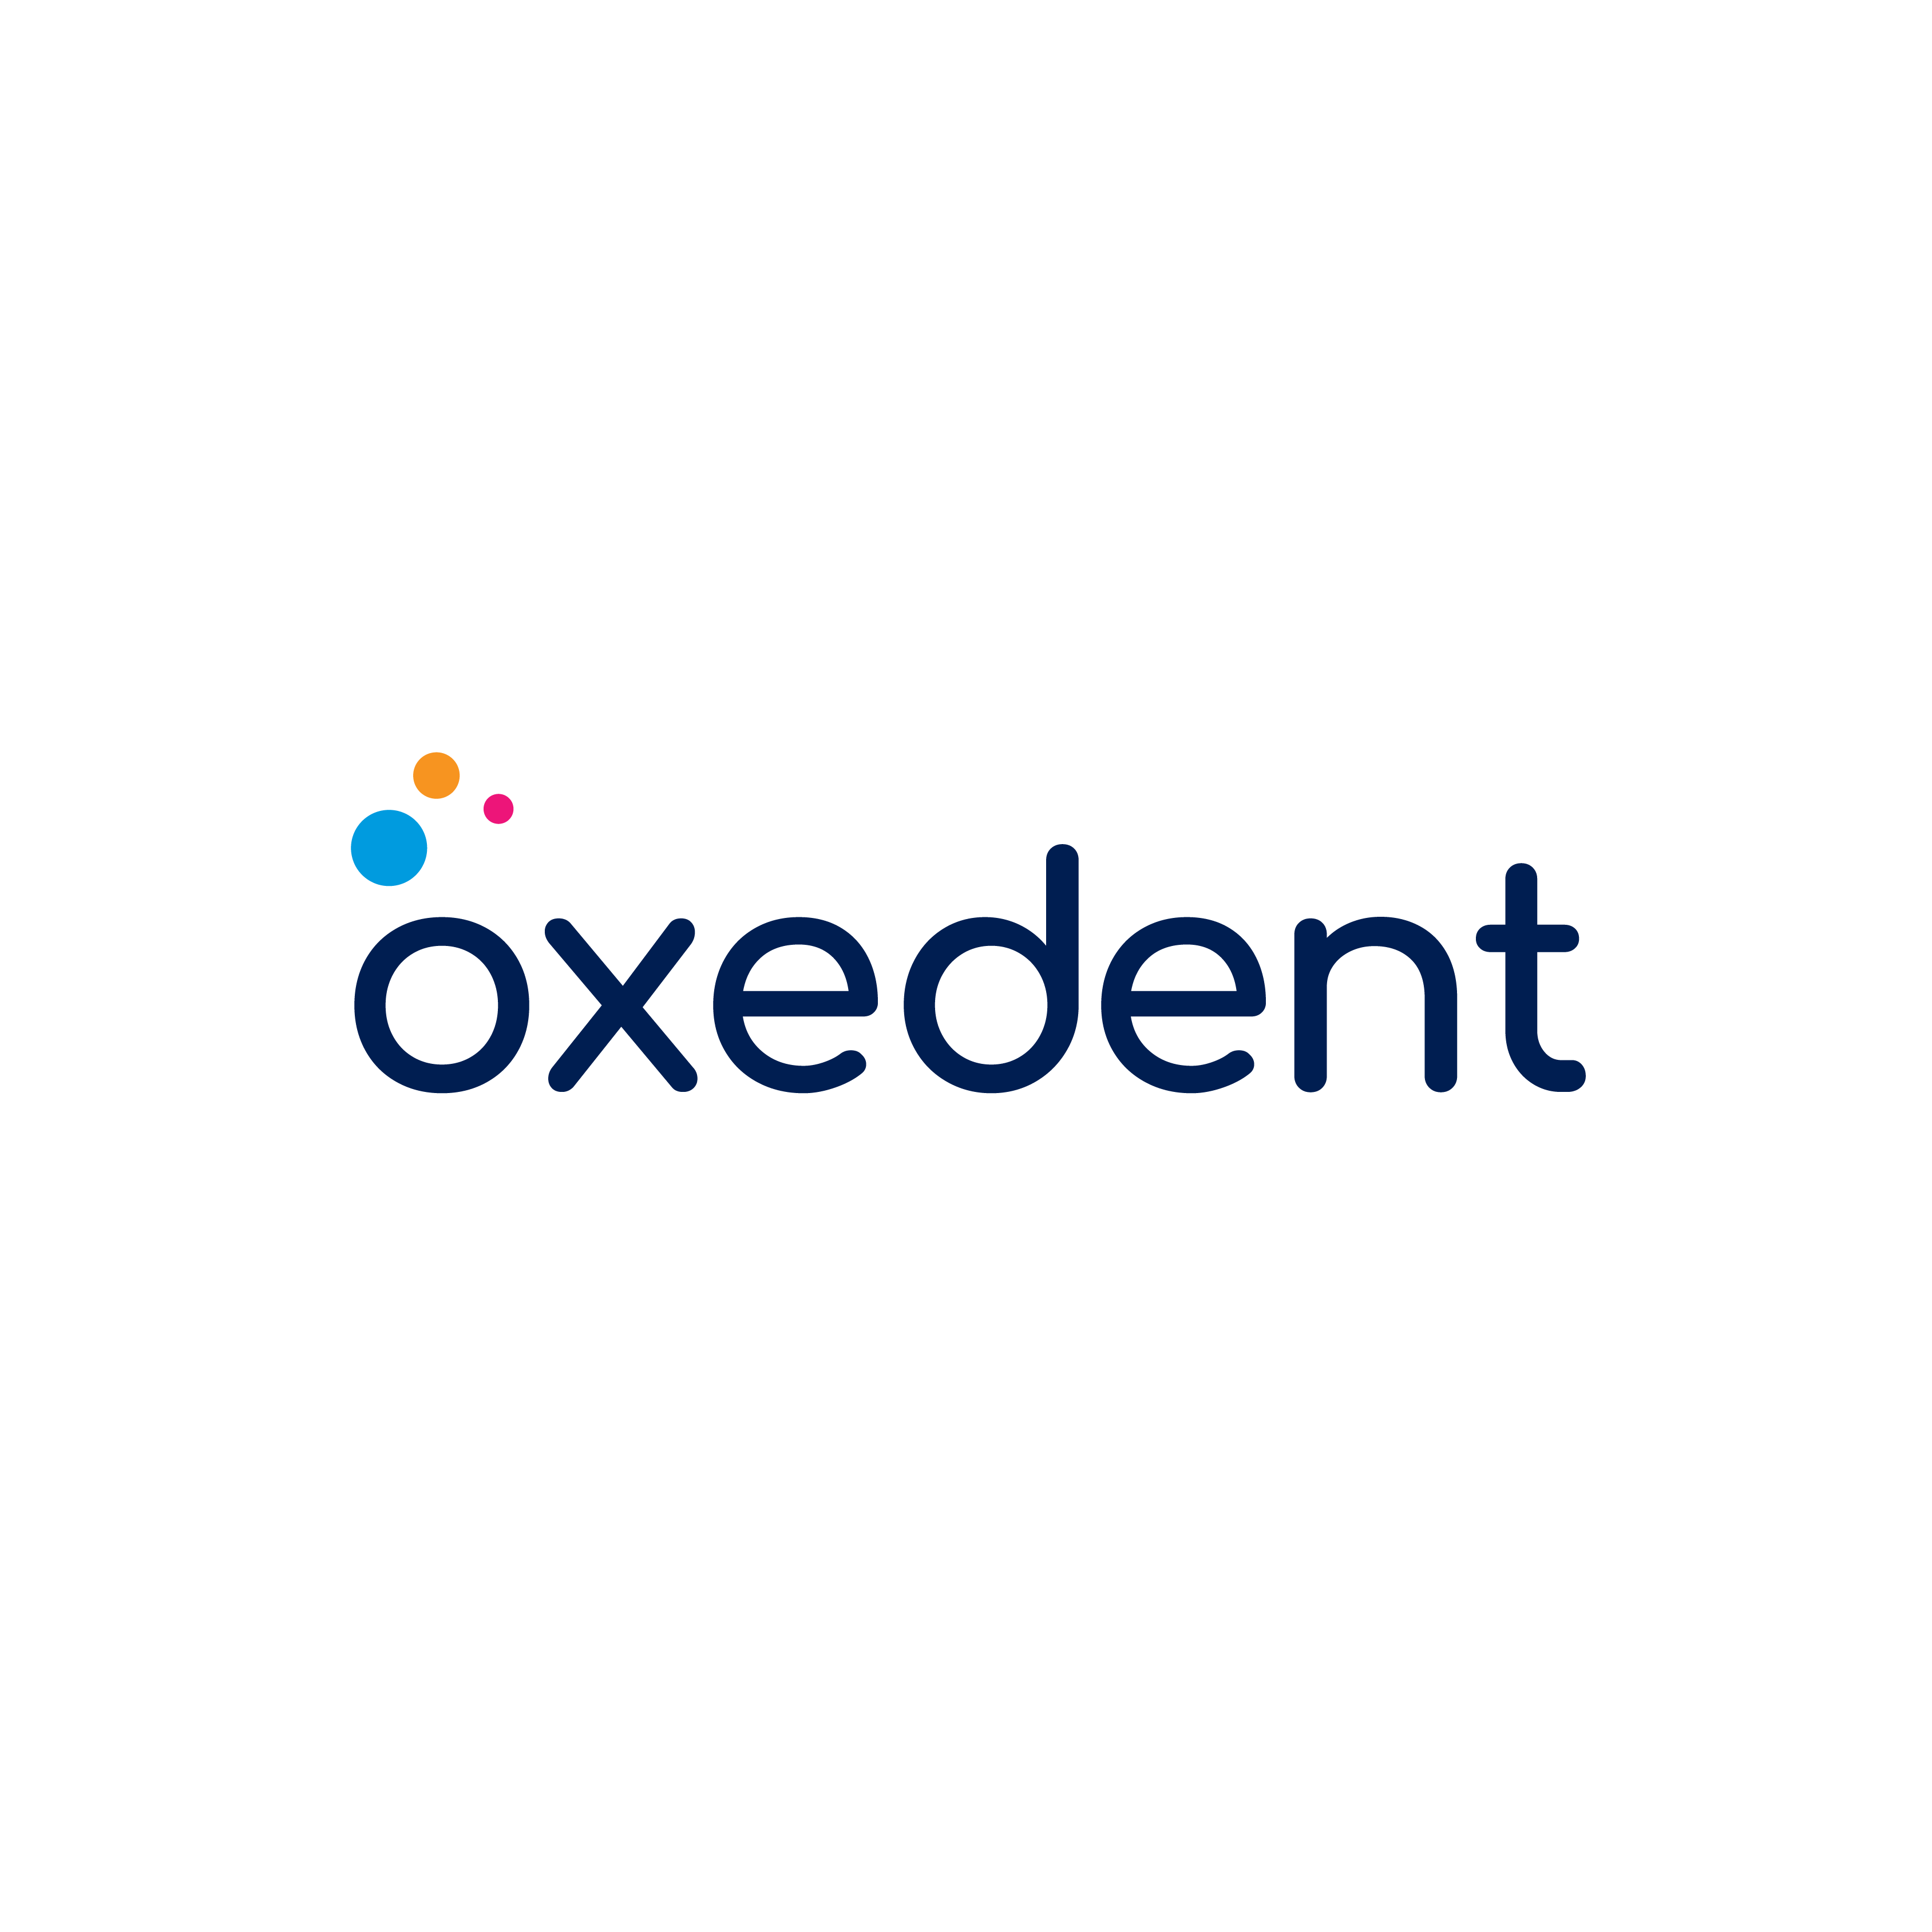 Oxedent